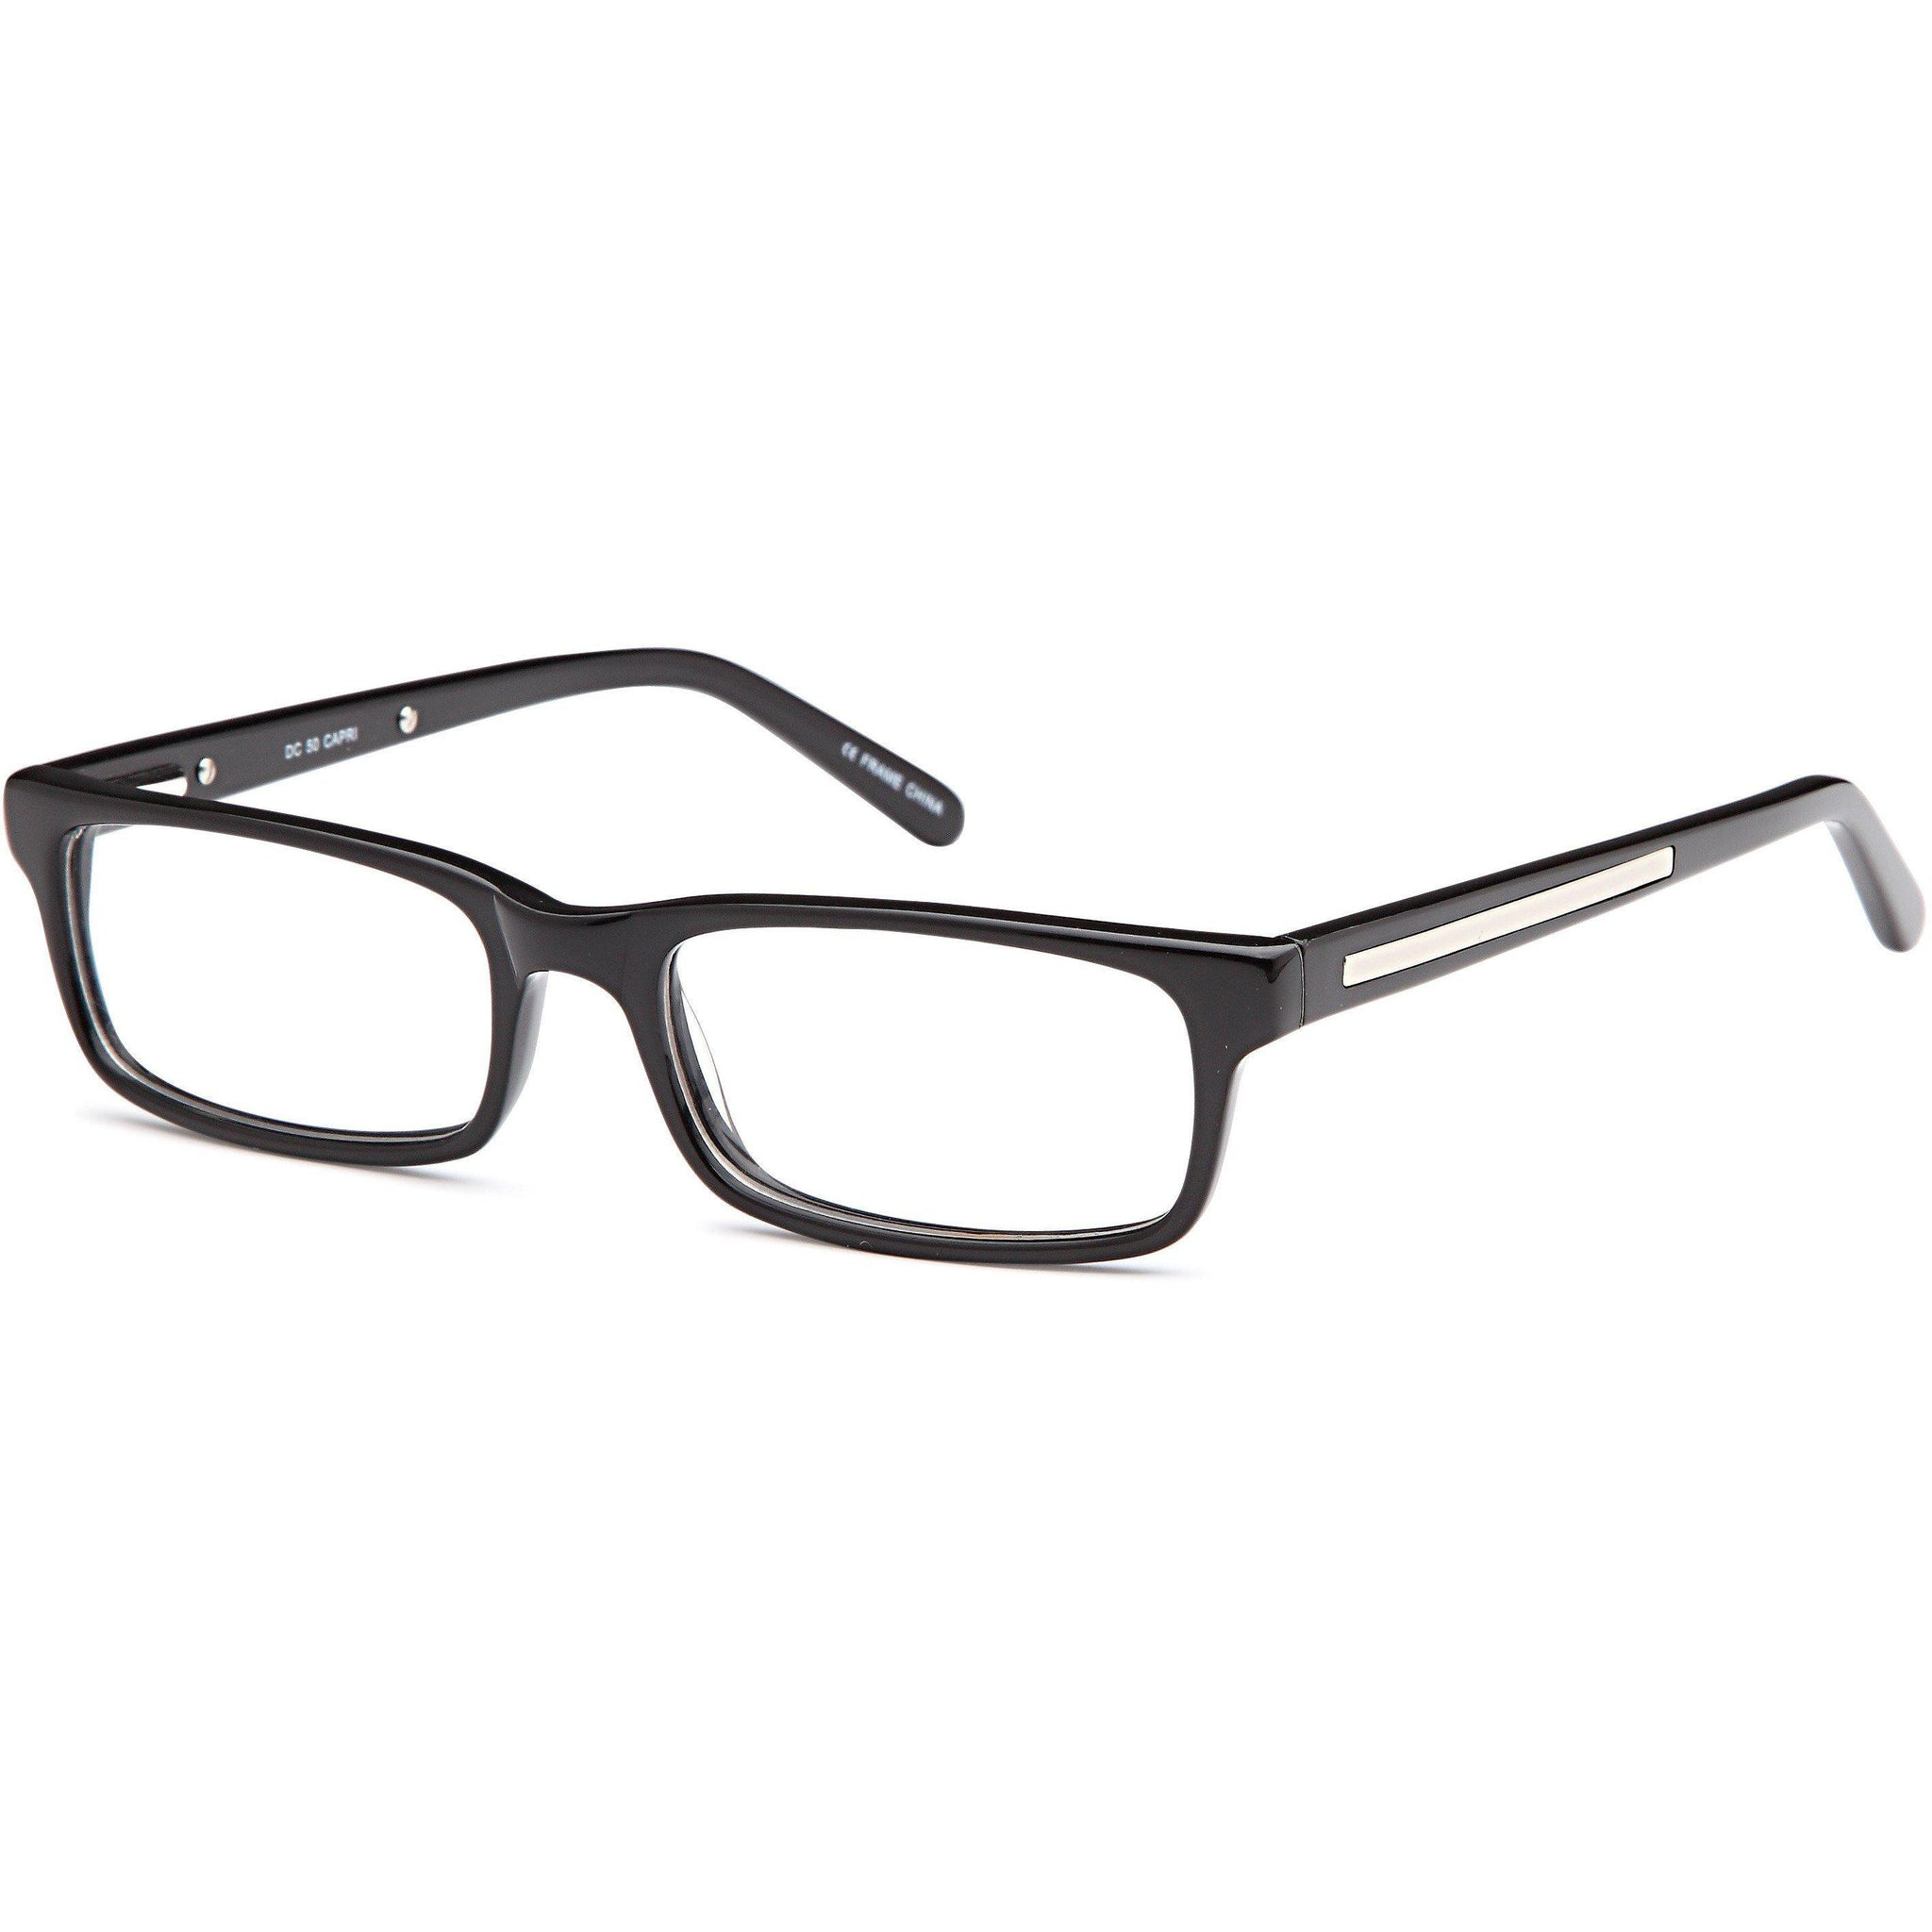 Di Caprio Prescription Glasses DC 50 Eyeglasses Frame - timetoshade